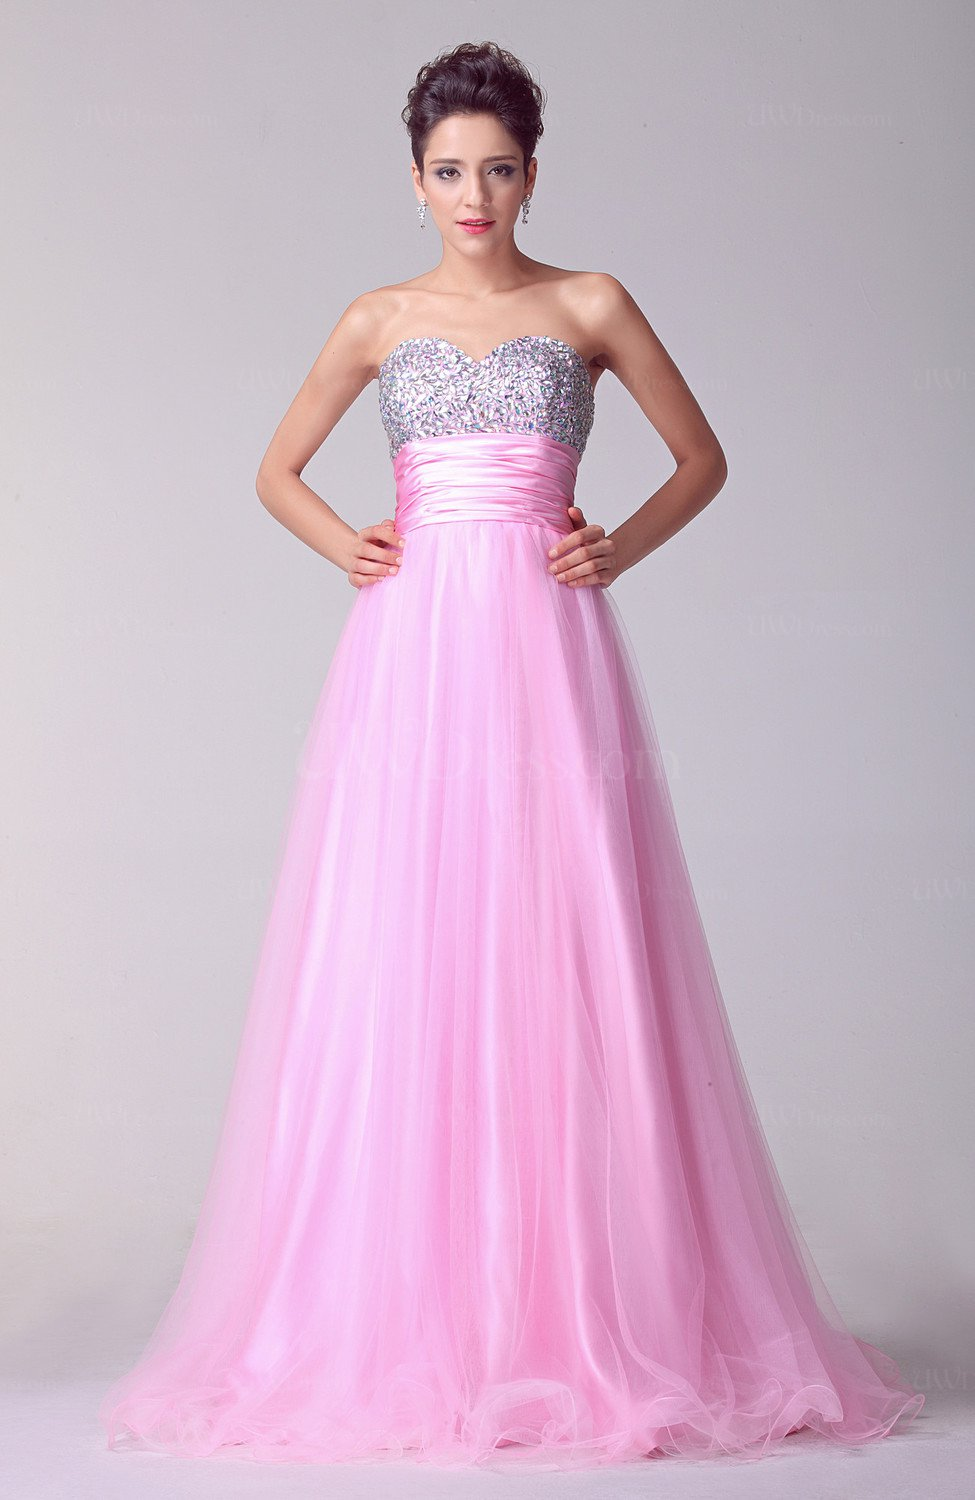 Inexpensive bridal gowns summer low back sweetheart formal for Cheap summer wedding dresses